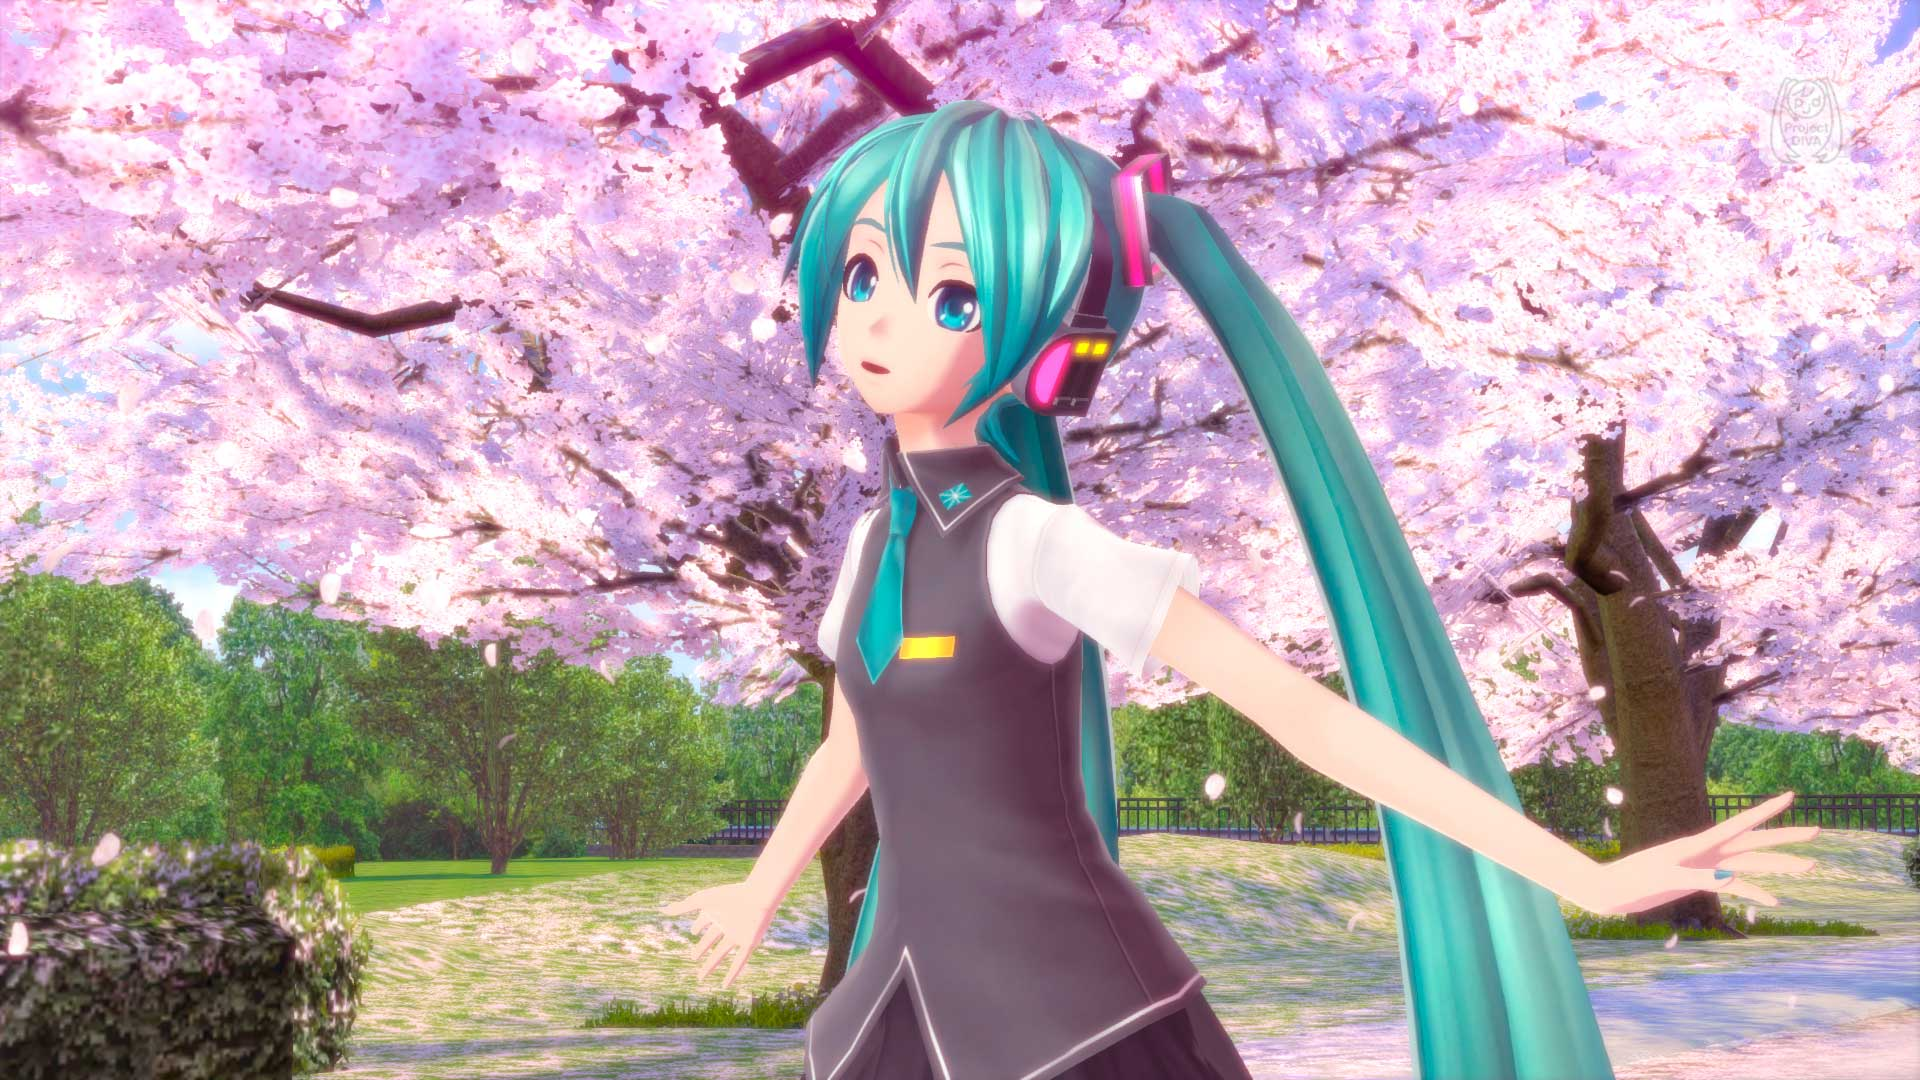 New hatsune miku project diva f 2nd dlc released today and more is on the way segalization - Hatsune miku project diva ...